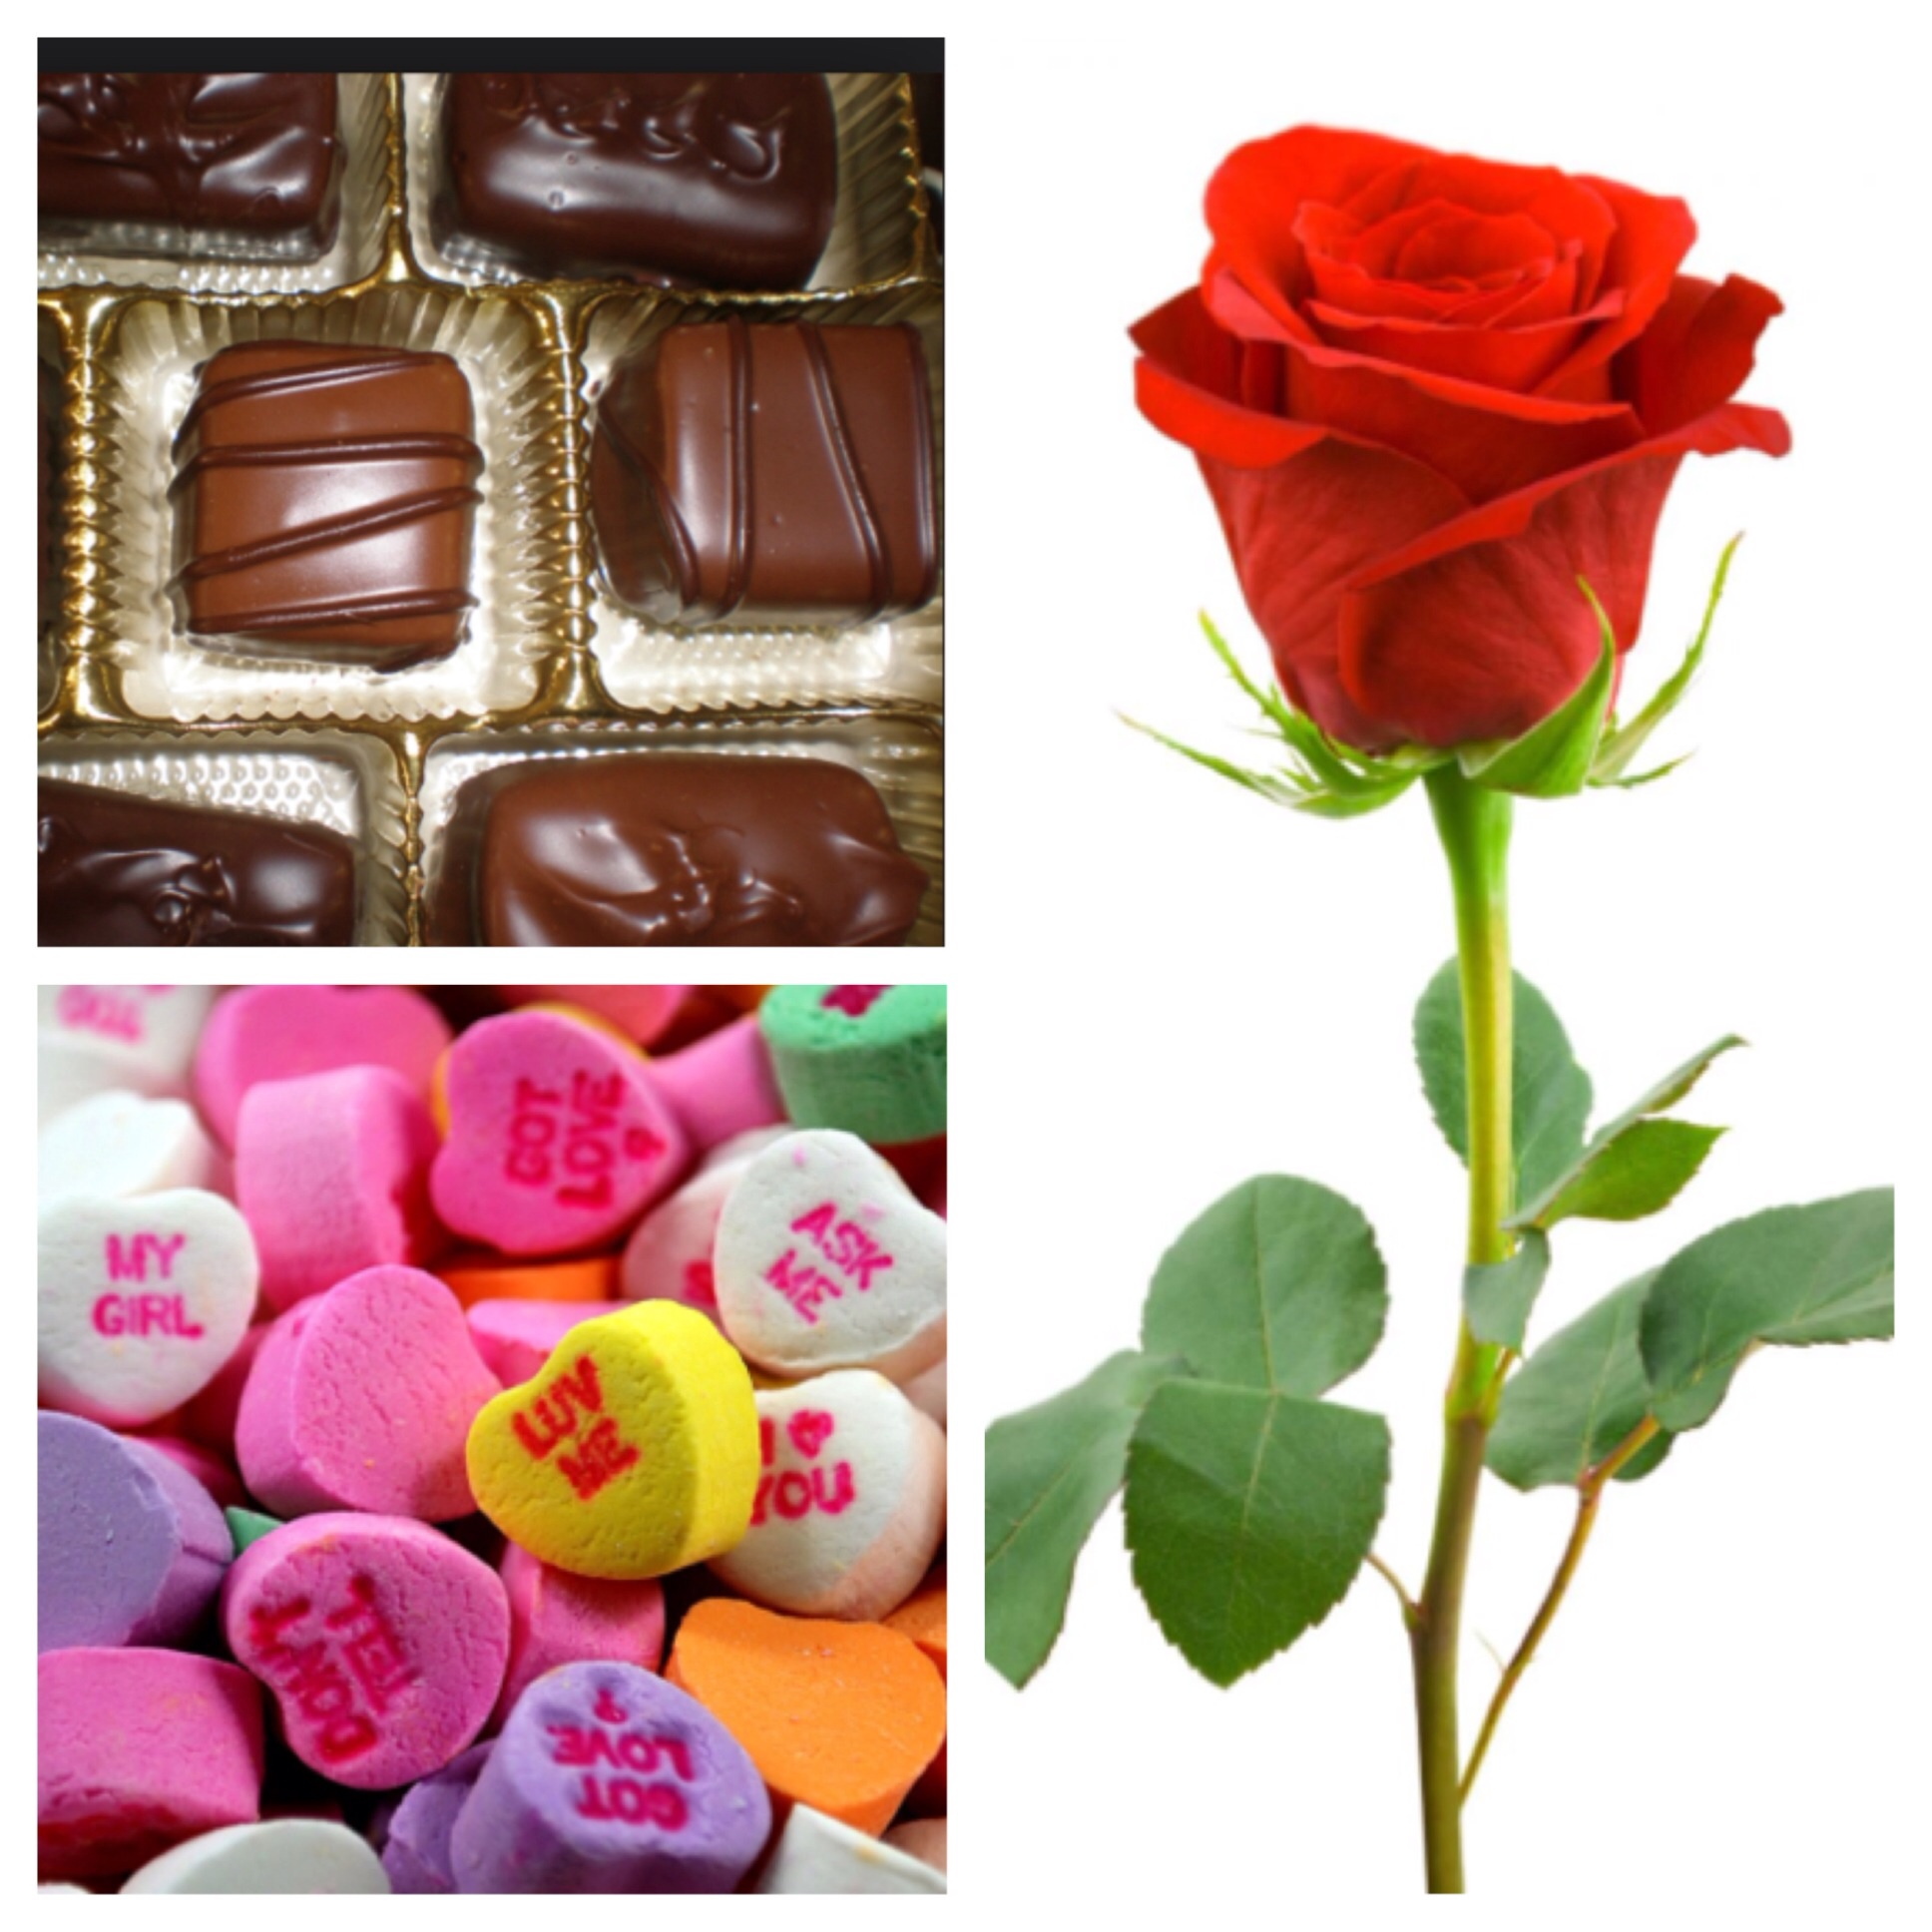 SHELLING OUT: Flowers, Chocolates, And Candy Hearts Are Some Of The  Stereotypical Items